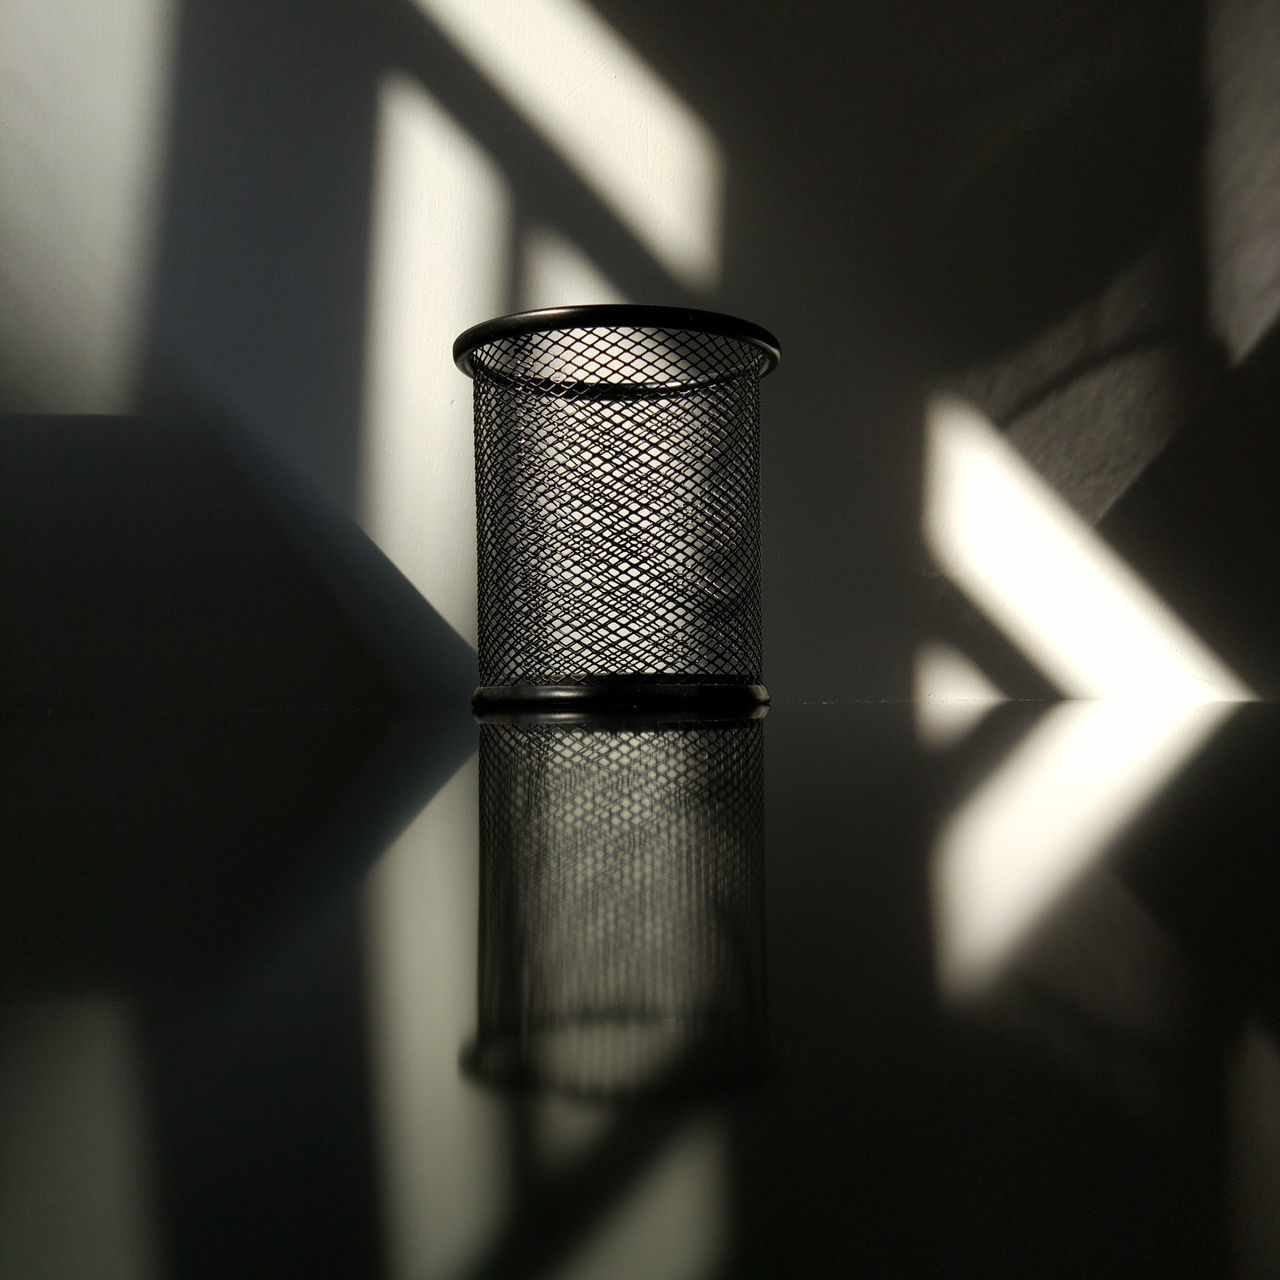 时光在墙上爬 ,人在慢慢走。(Time Walks , Life Flies) Shadow No Edit/no Filter MIphotography No People Tranquility Black And White Light Indoors  Light And Shadows Life Time Reflections Symmetry Thinking About Life StillLife Stillness In Time Stillshoot